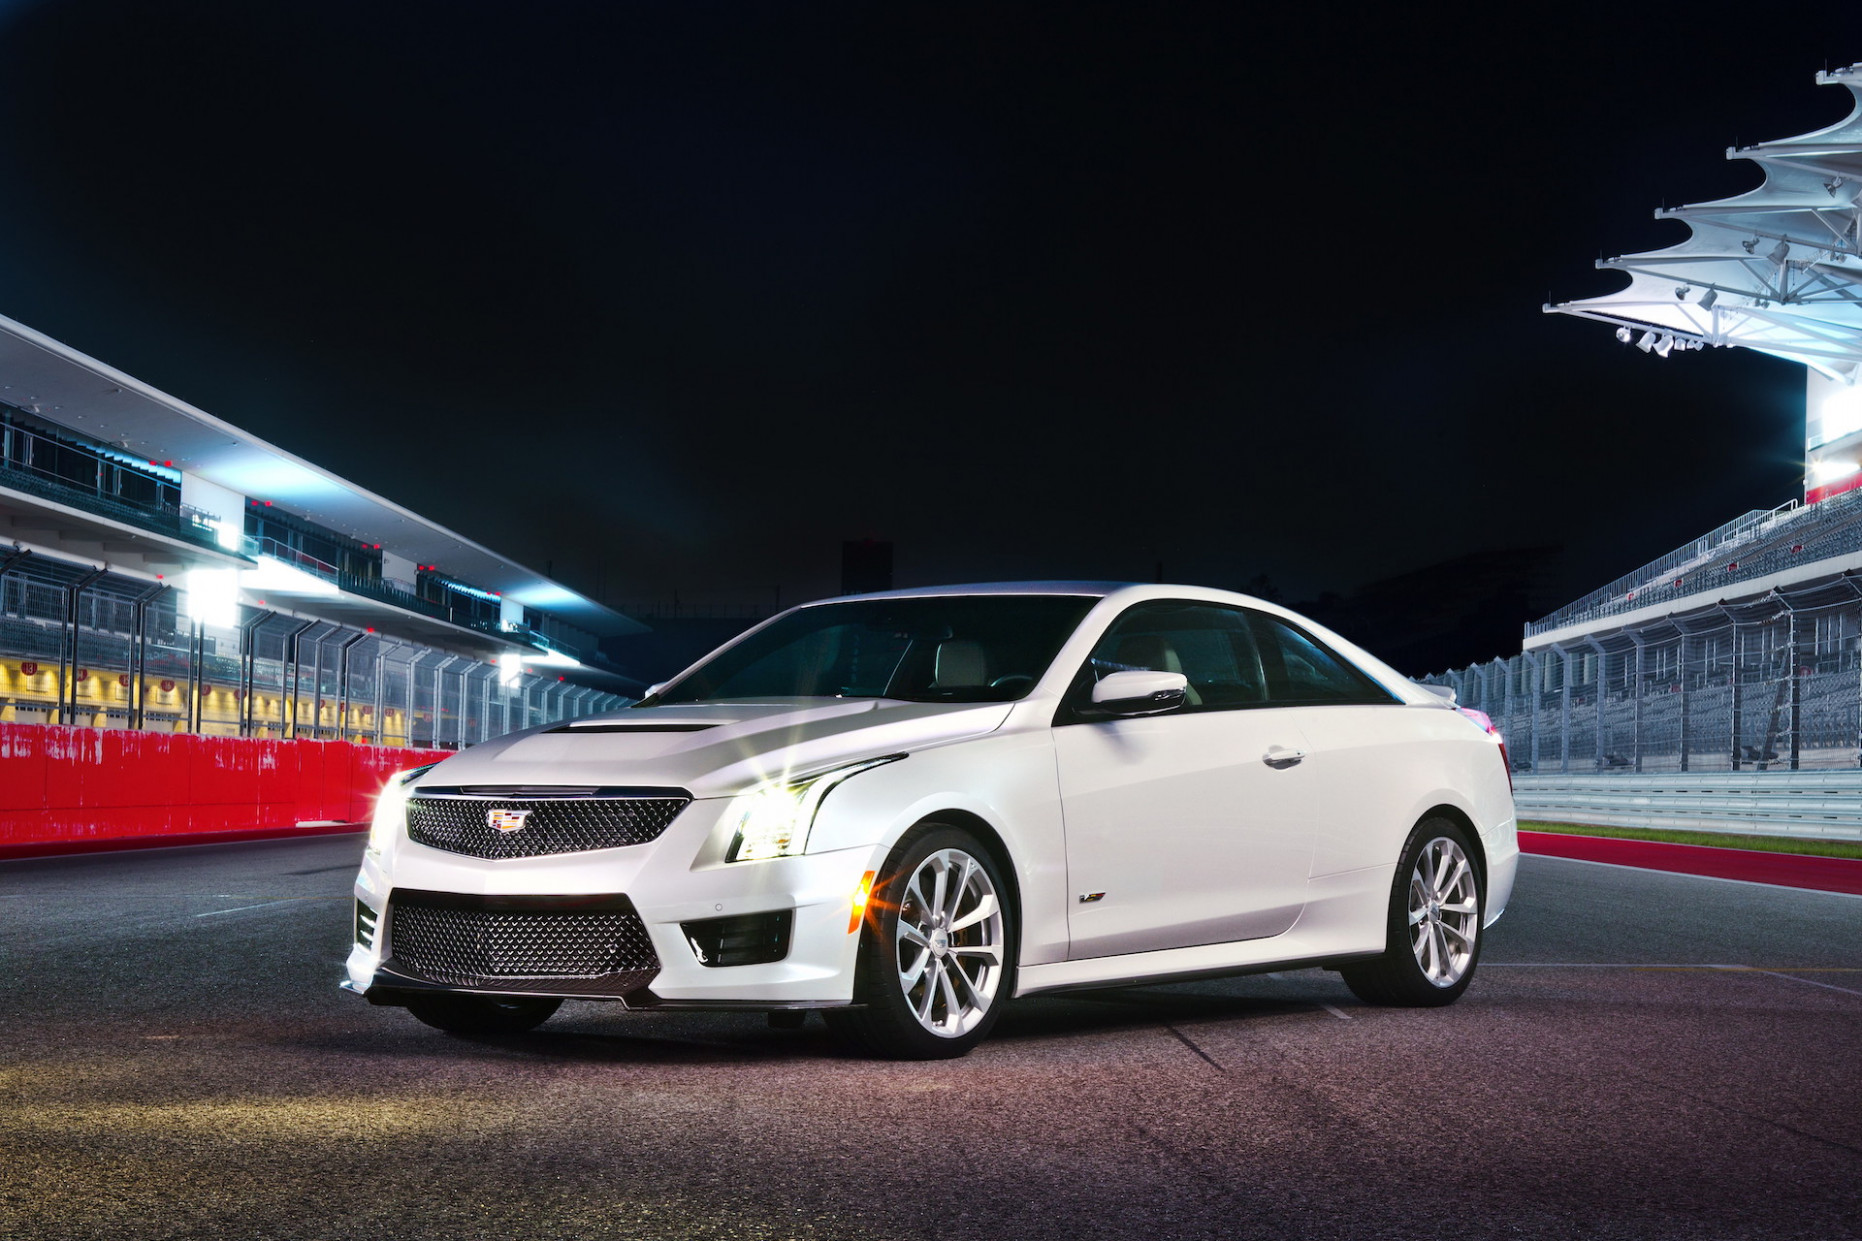 8 Cadillac ATS-V Coupe pricier but better equipped - 2020 cadillac v coupe